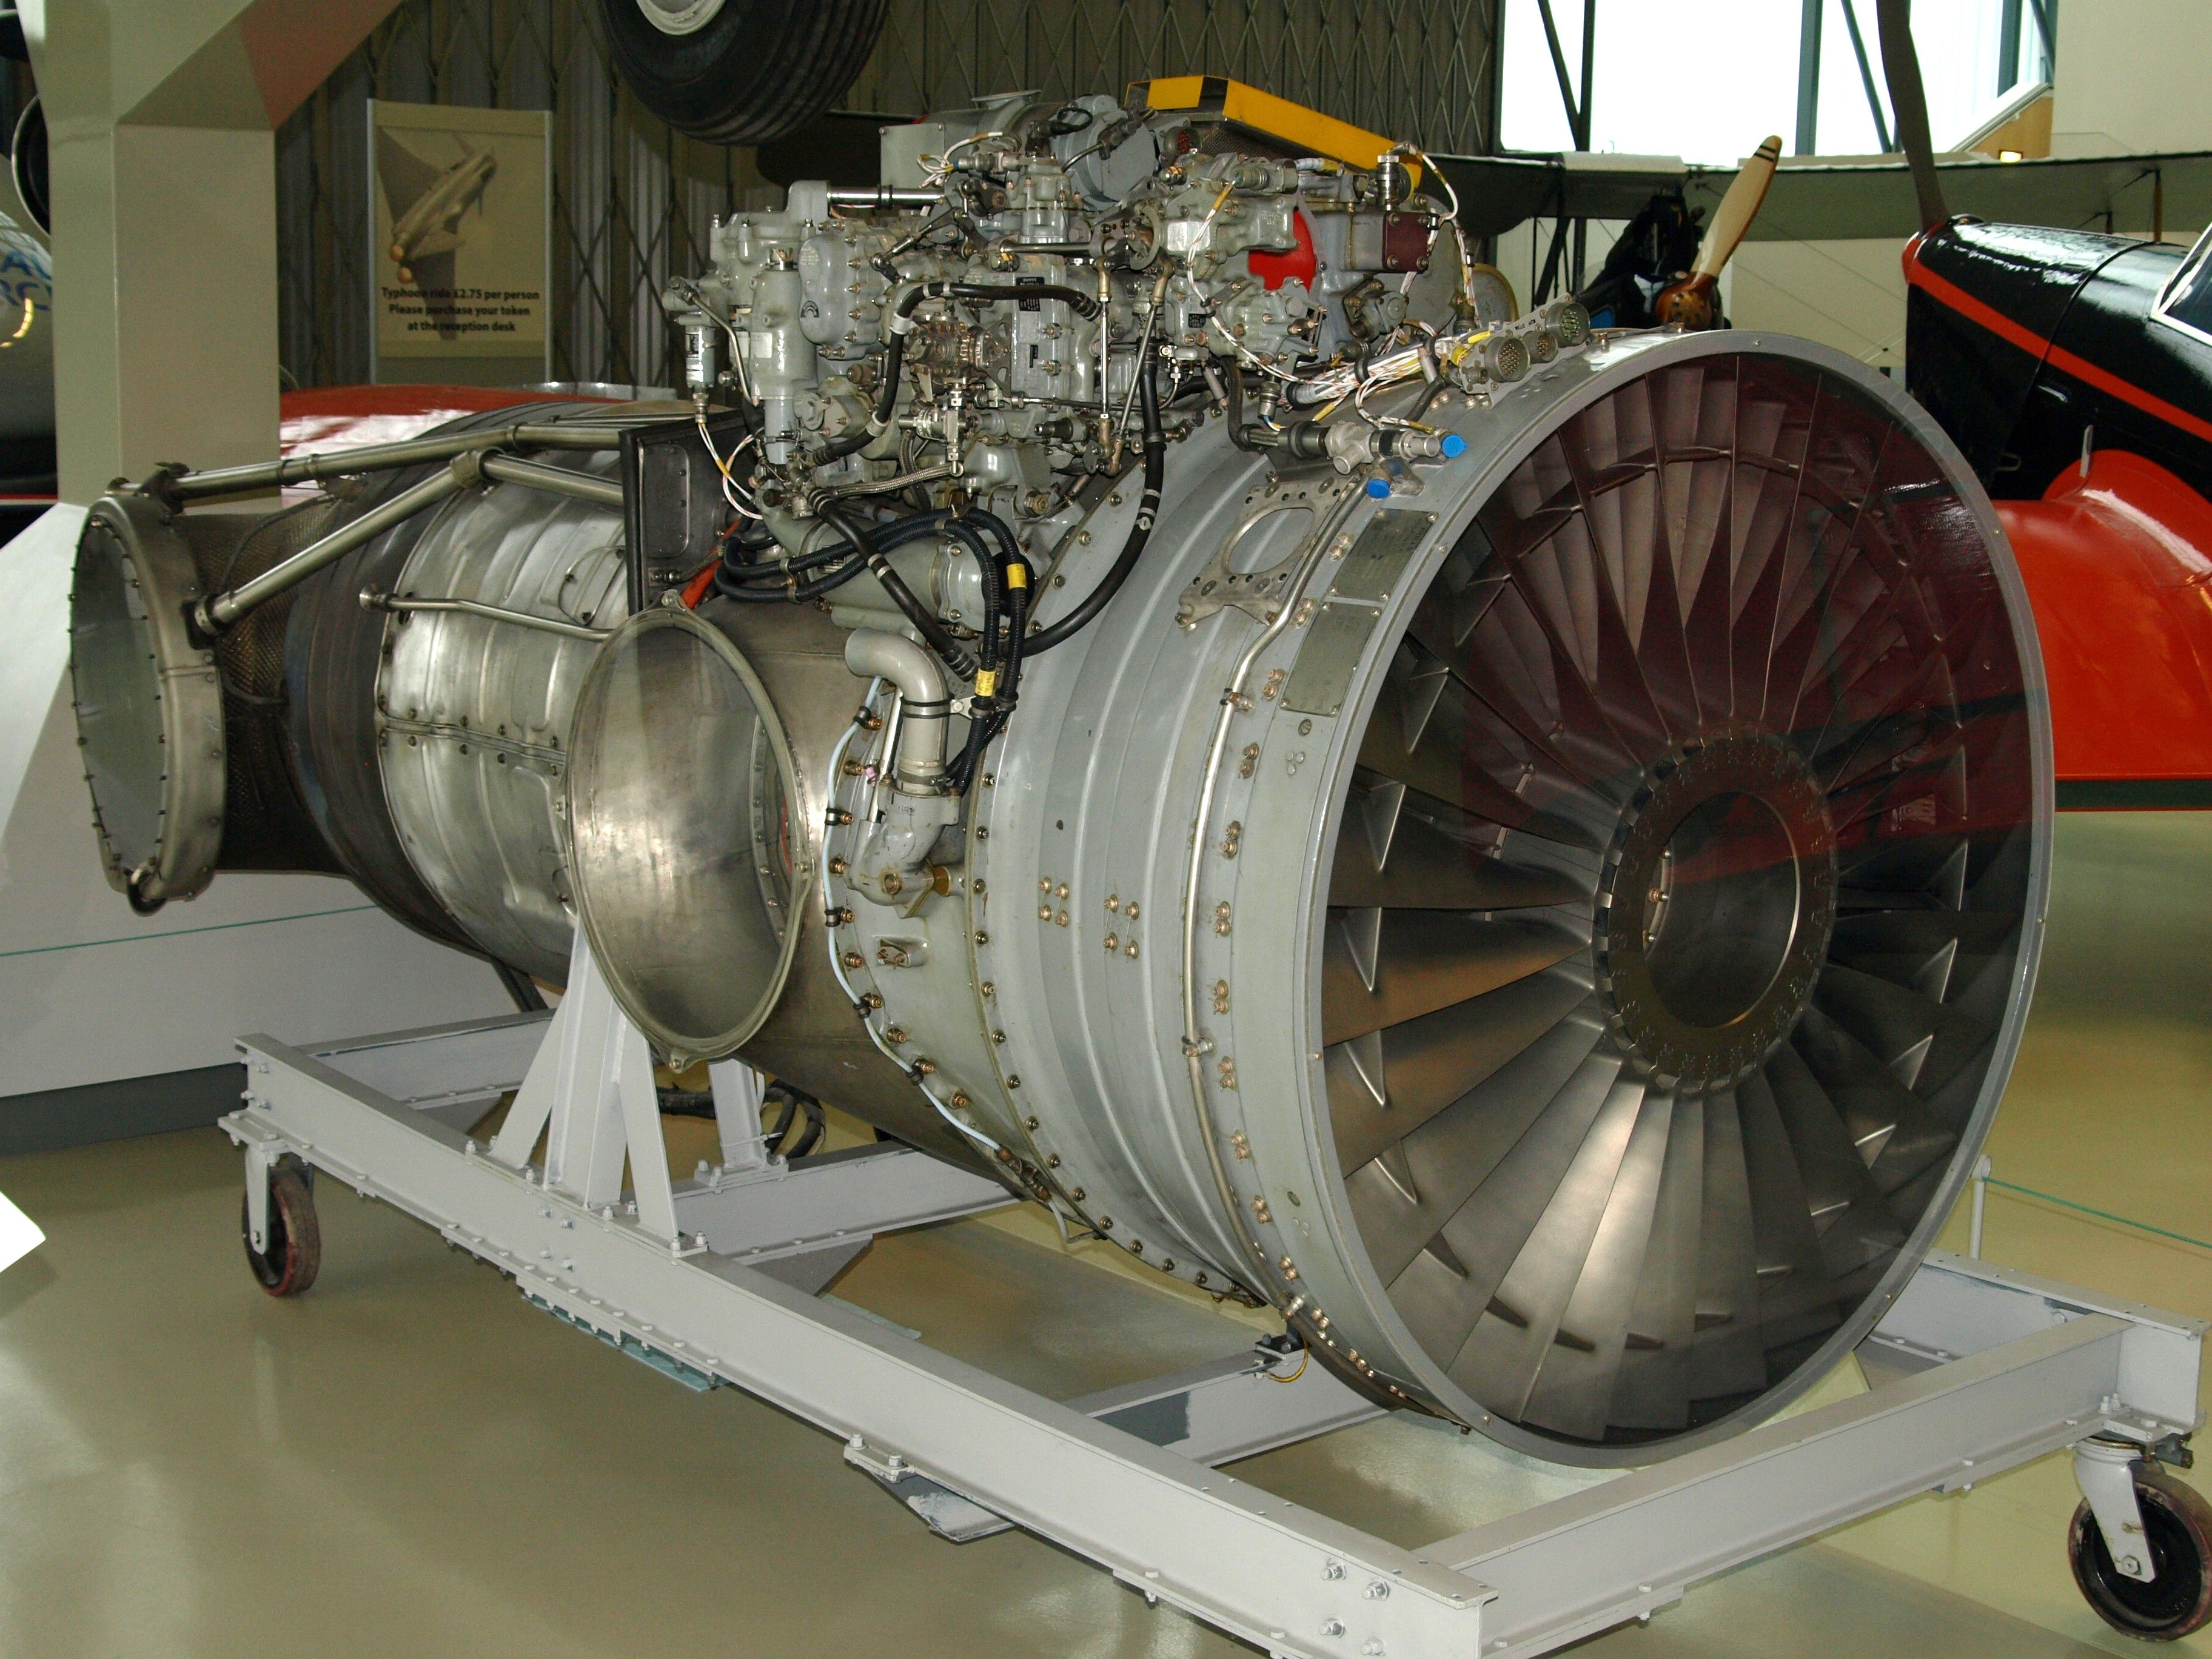 hight resolution of rolls royce pegasus turbine engine gas turbine engineering technology aircraft engine schematic